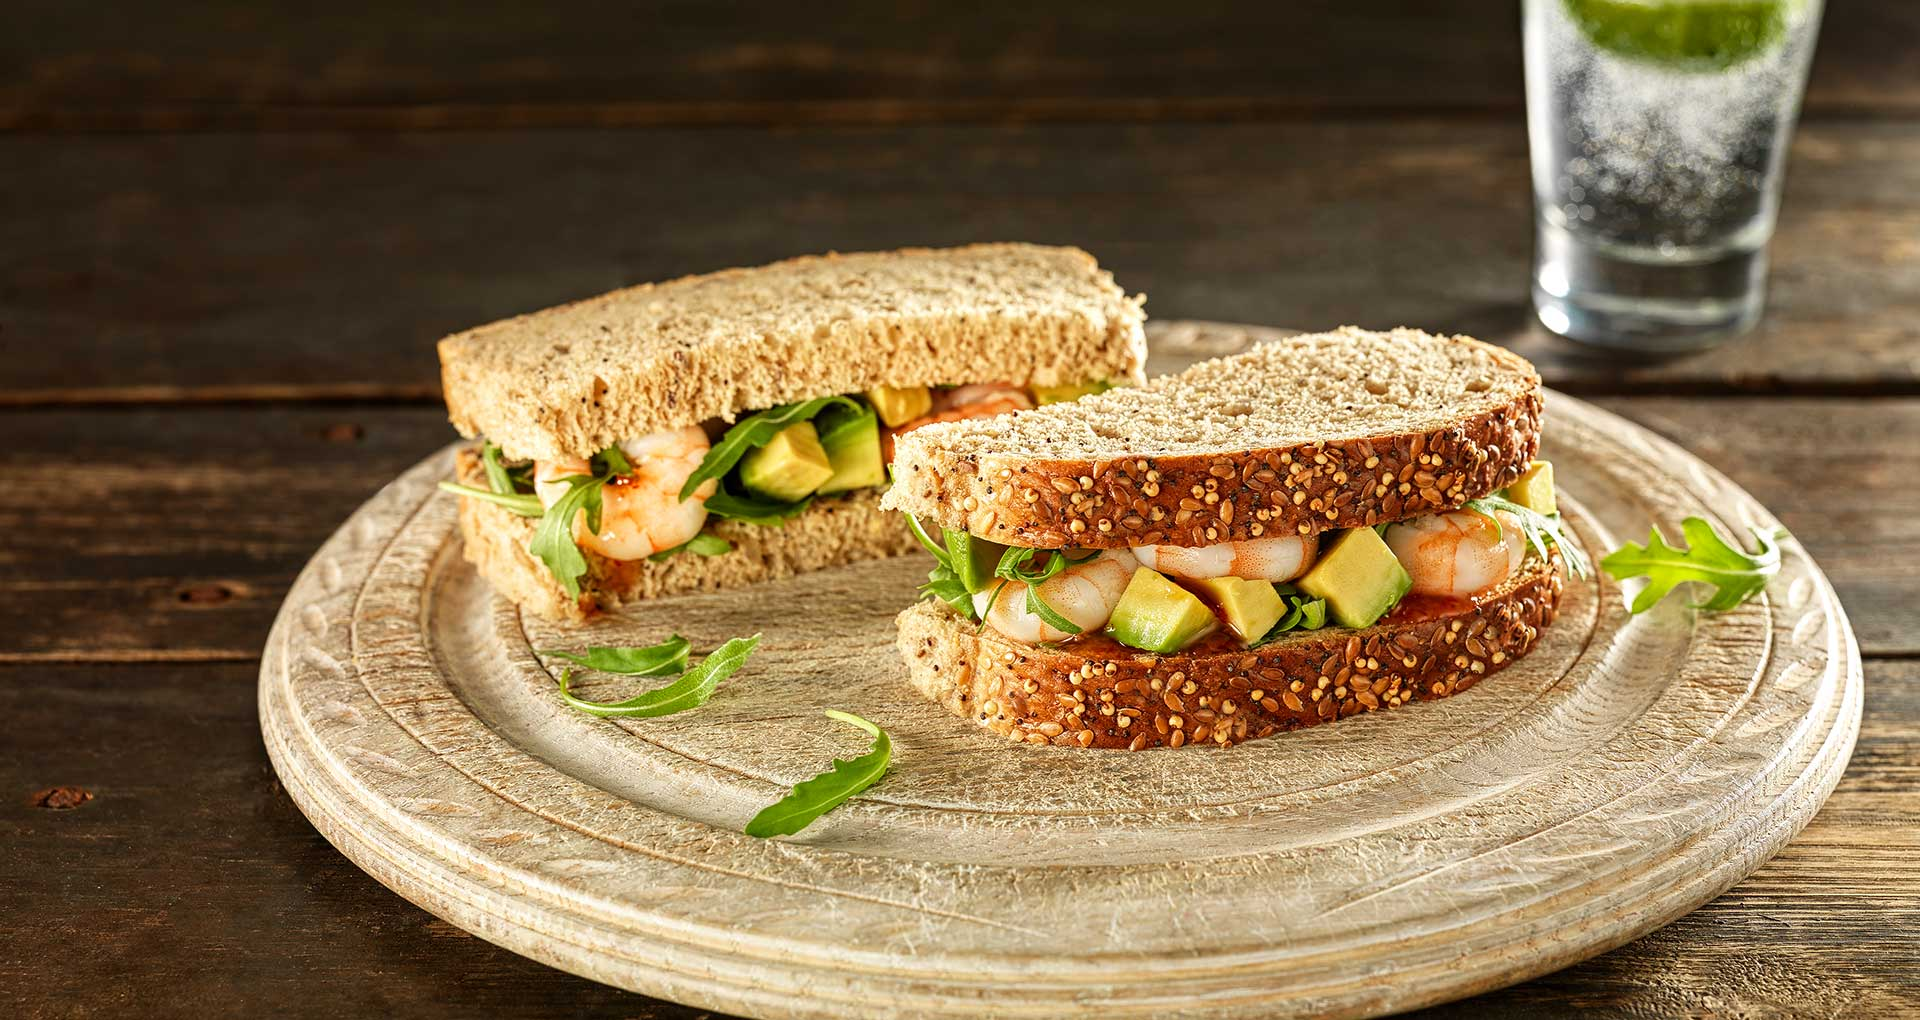 Prawn, Avocado & Chilli Sandwich